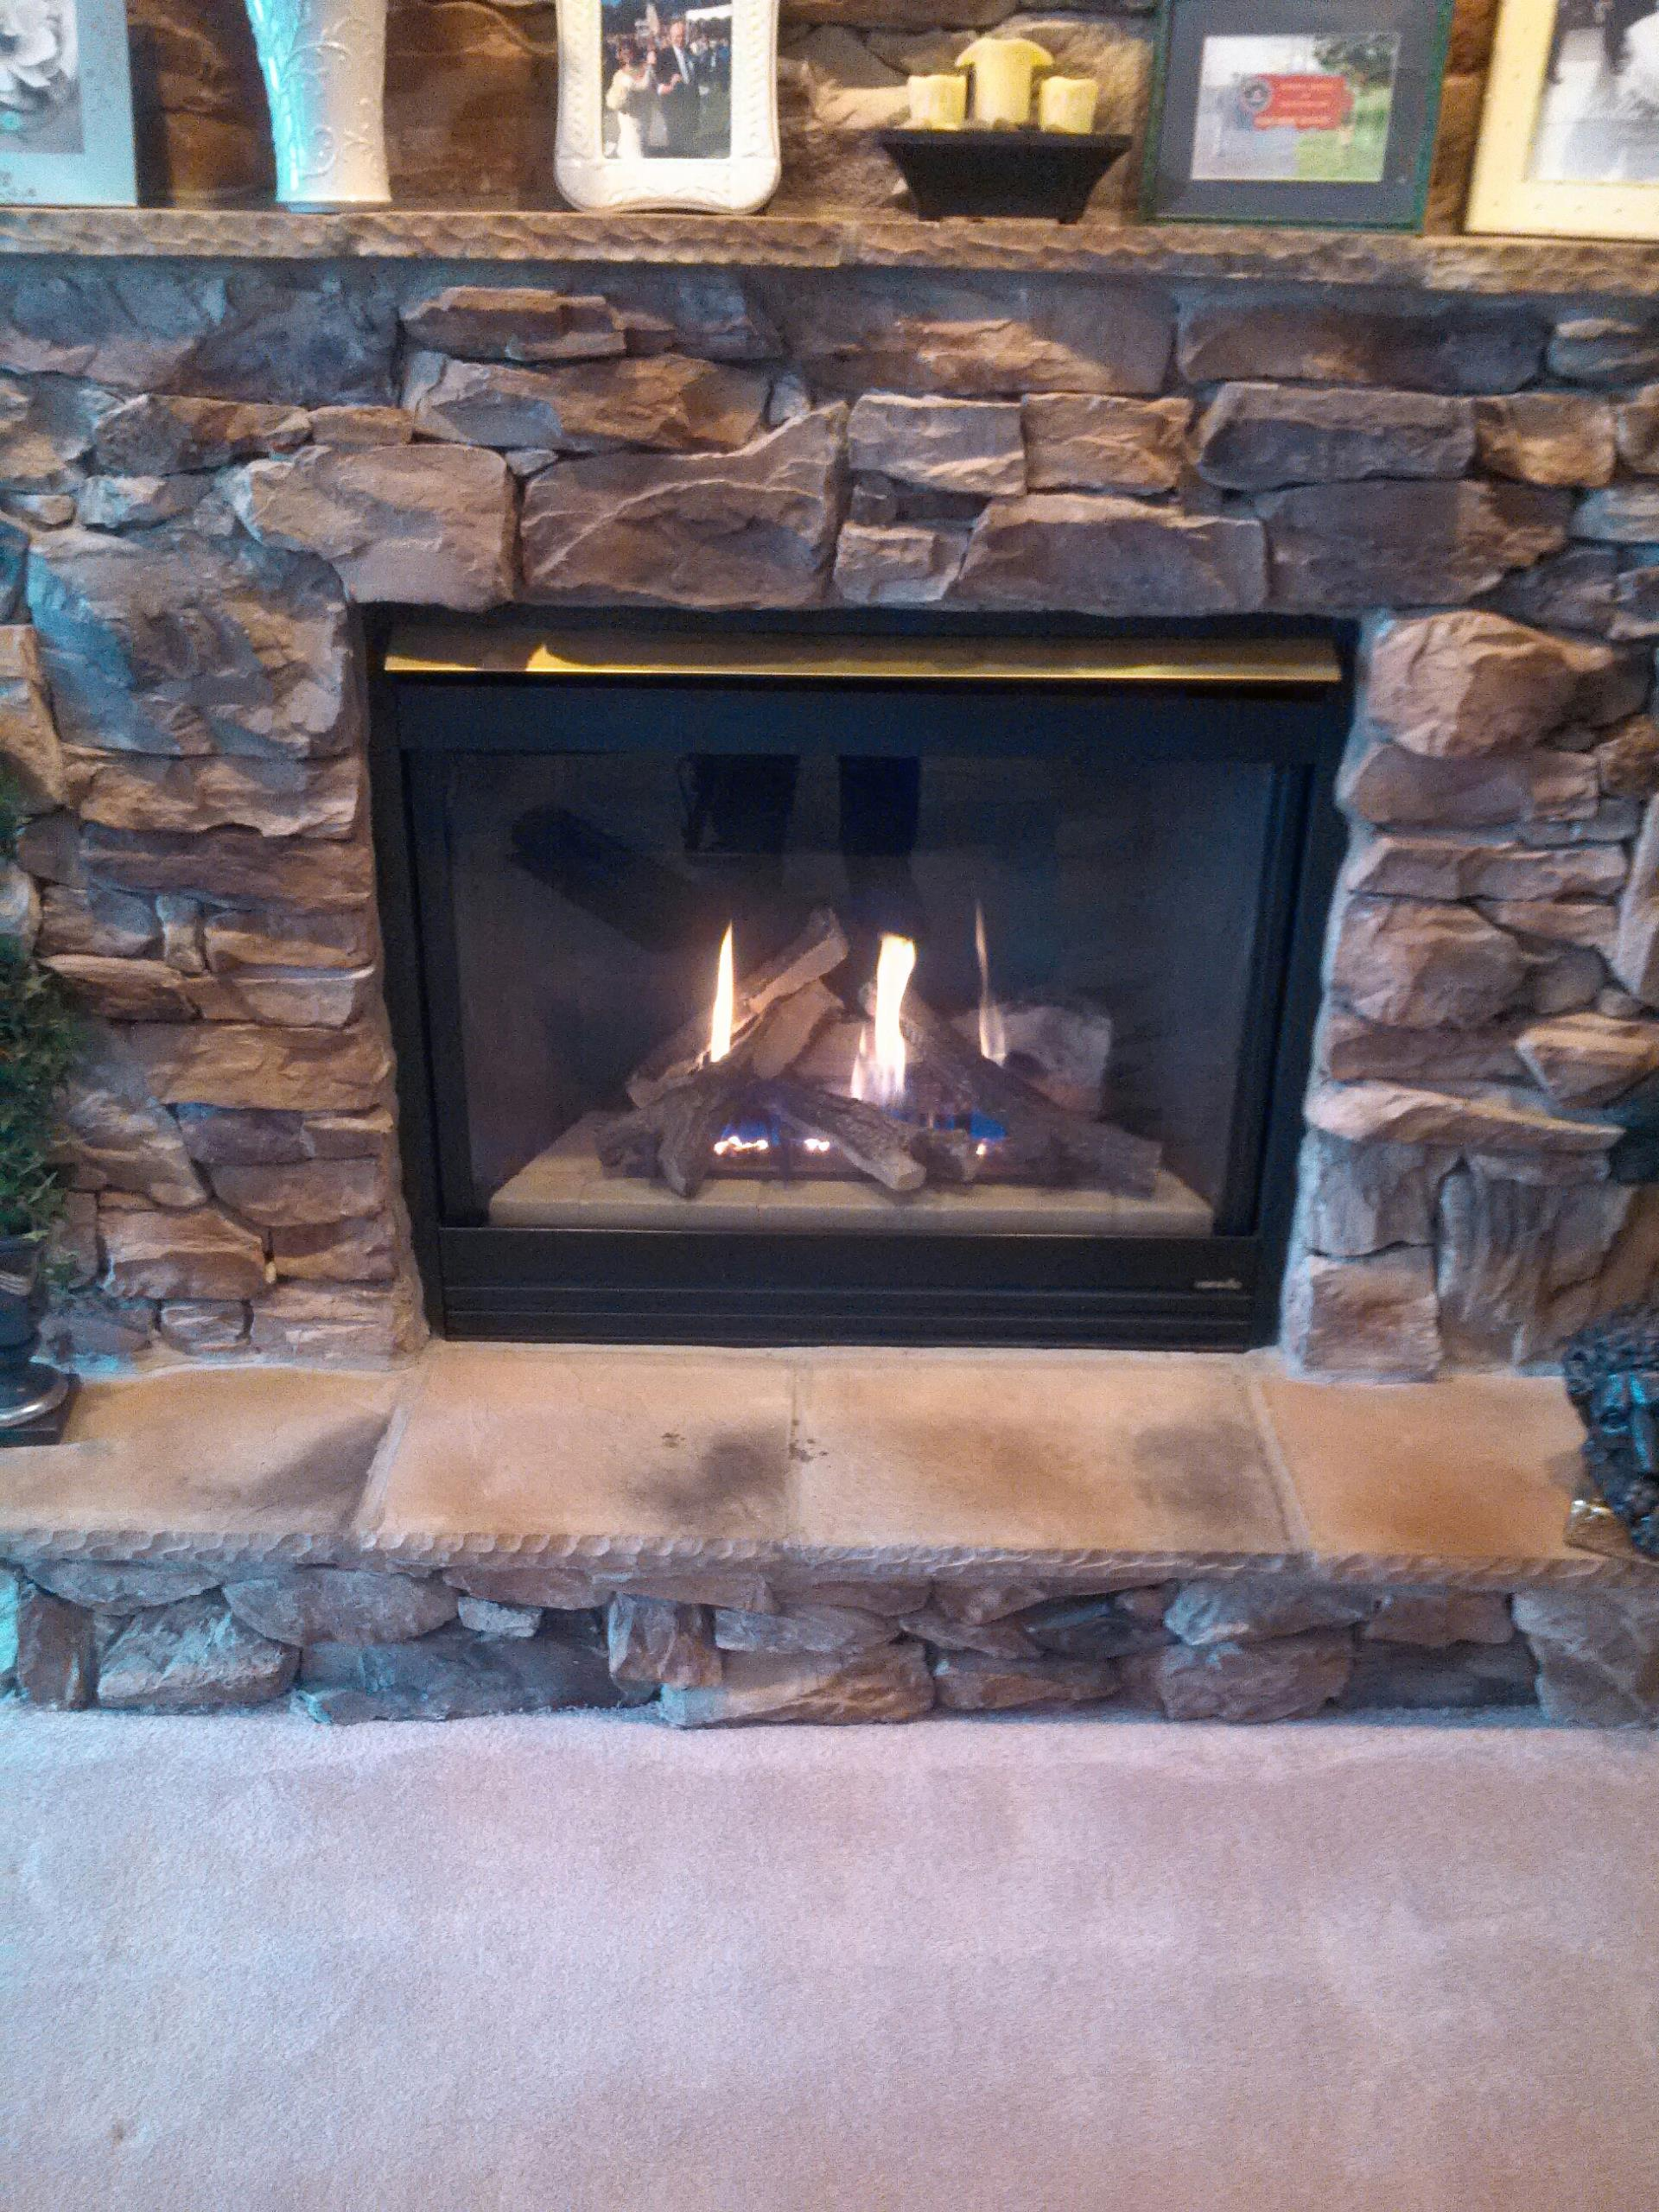 Gambrills, MD - Heat N Glo gas fire place insert & gas log set installation repair service call in Gambrills Maryland 21504